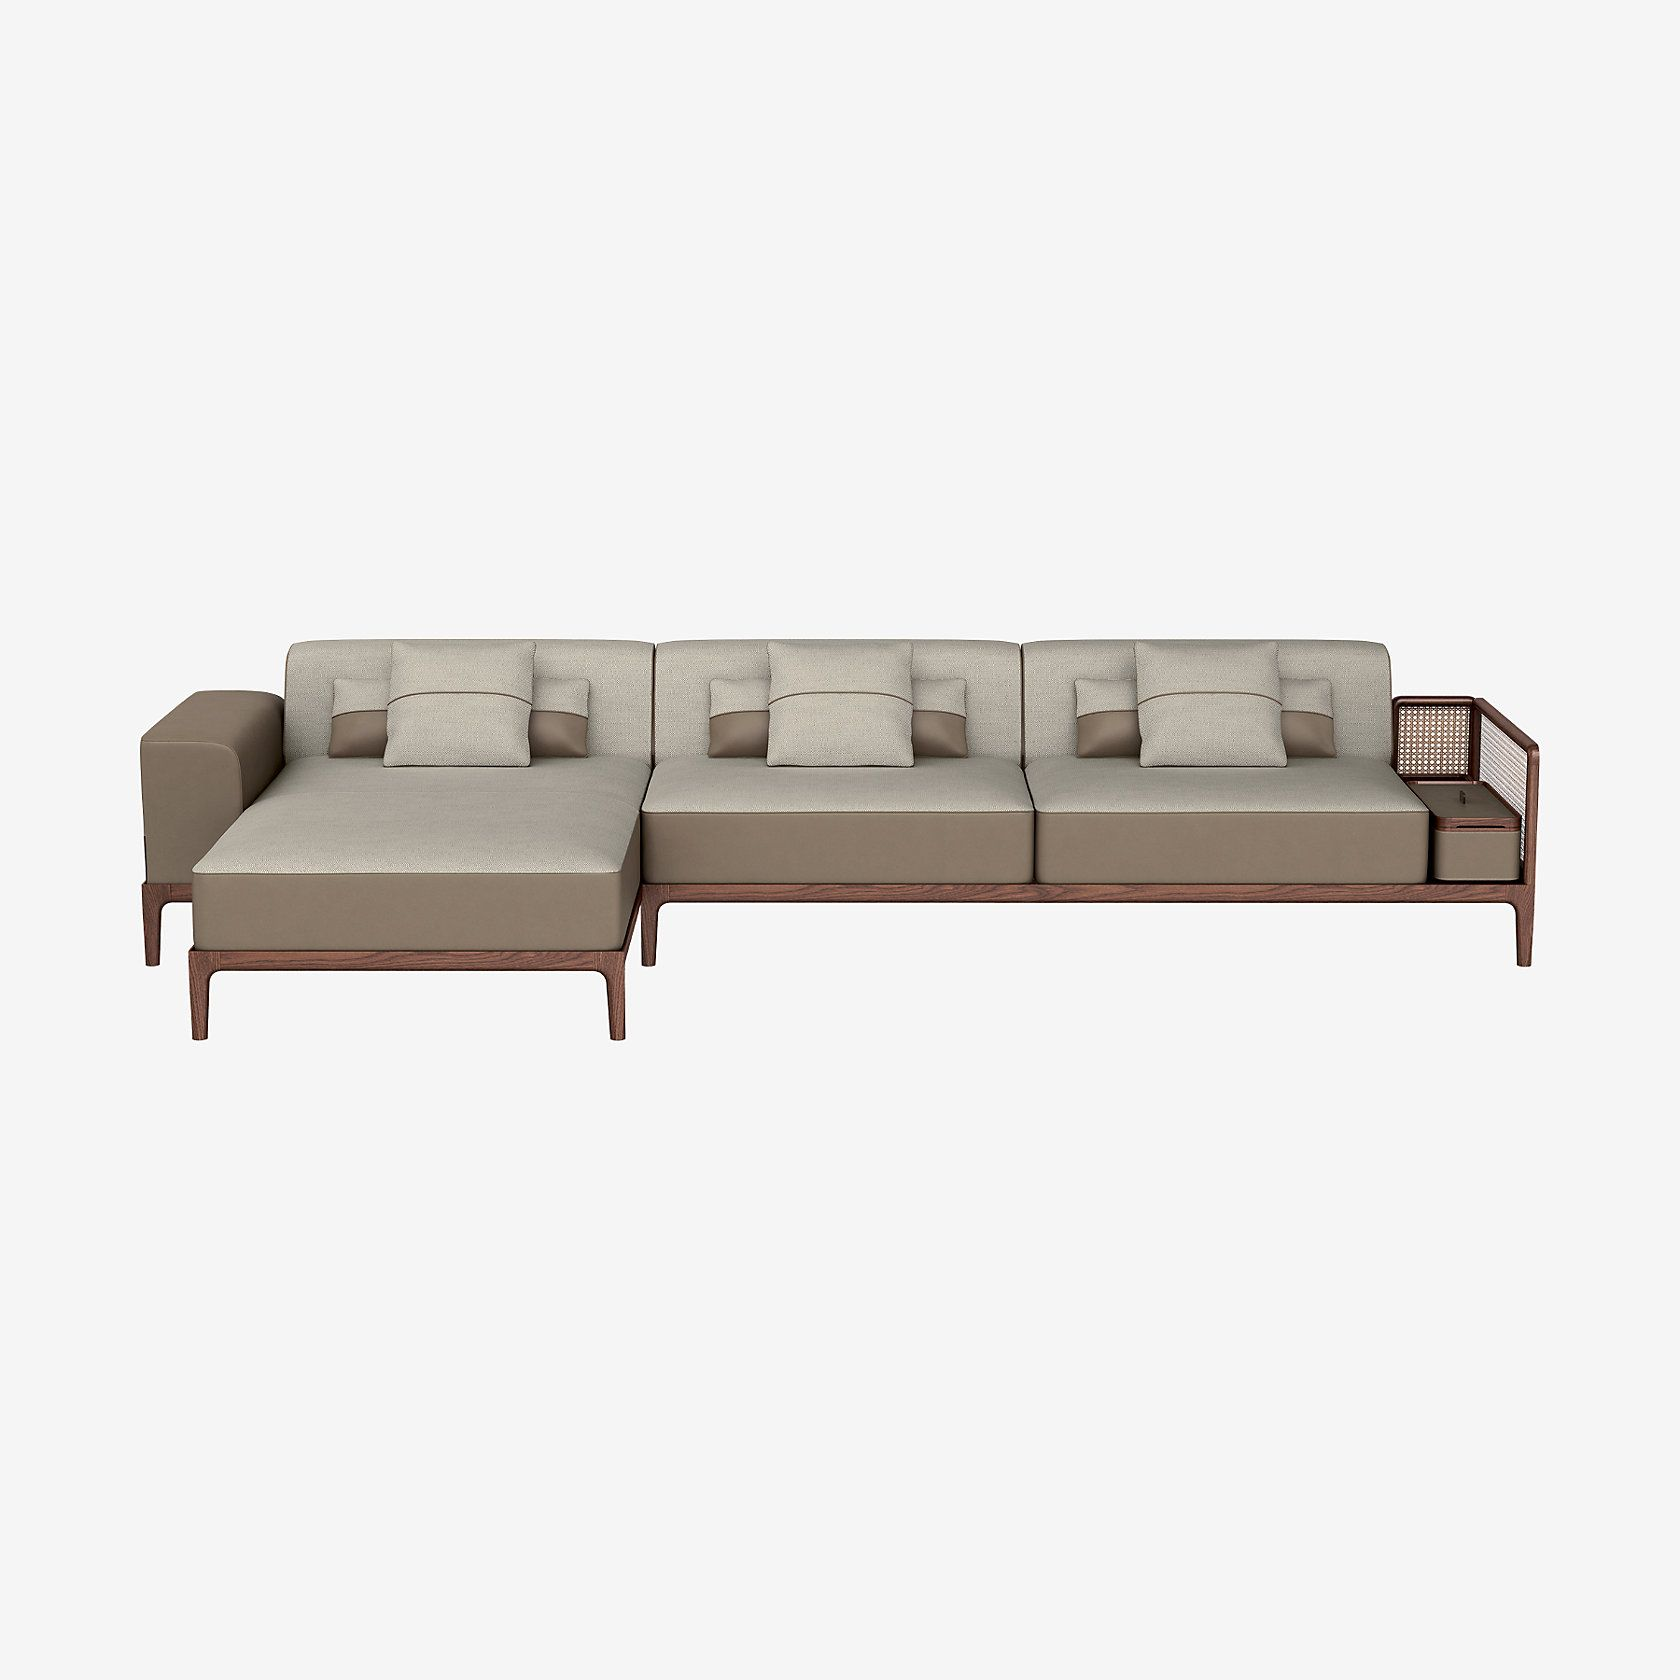 Sofa Sellier 2 Seater With Chaise Lounge In 2020 Sofa Sofa Design Chaise Lounge